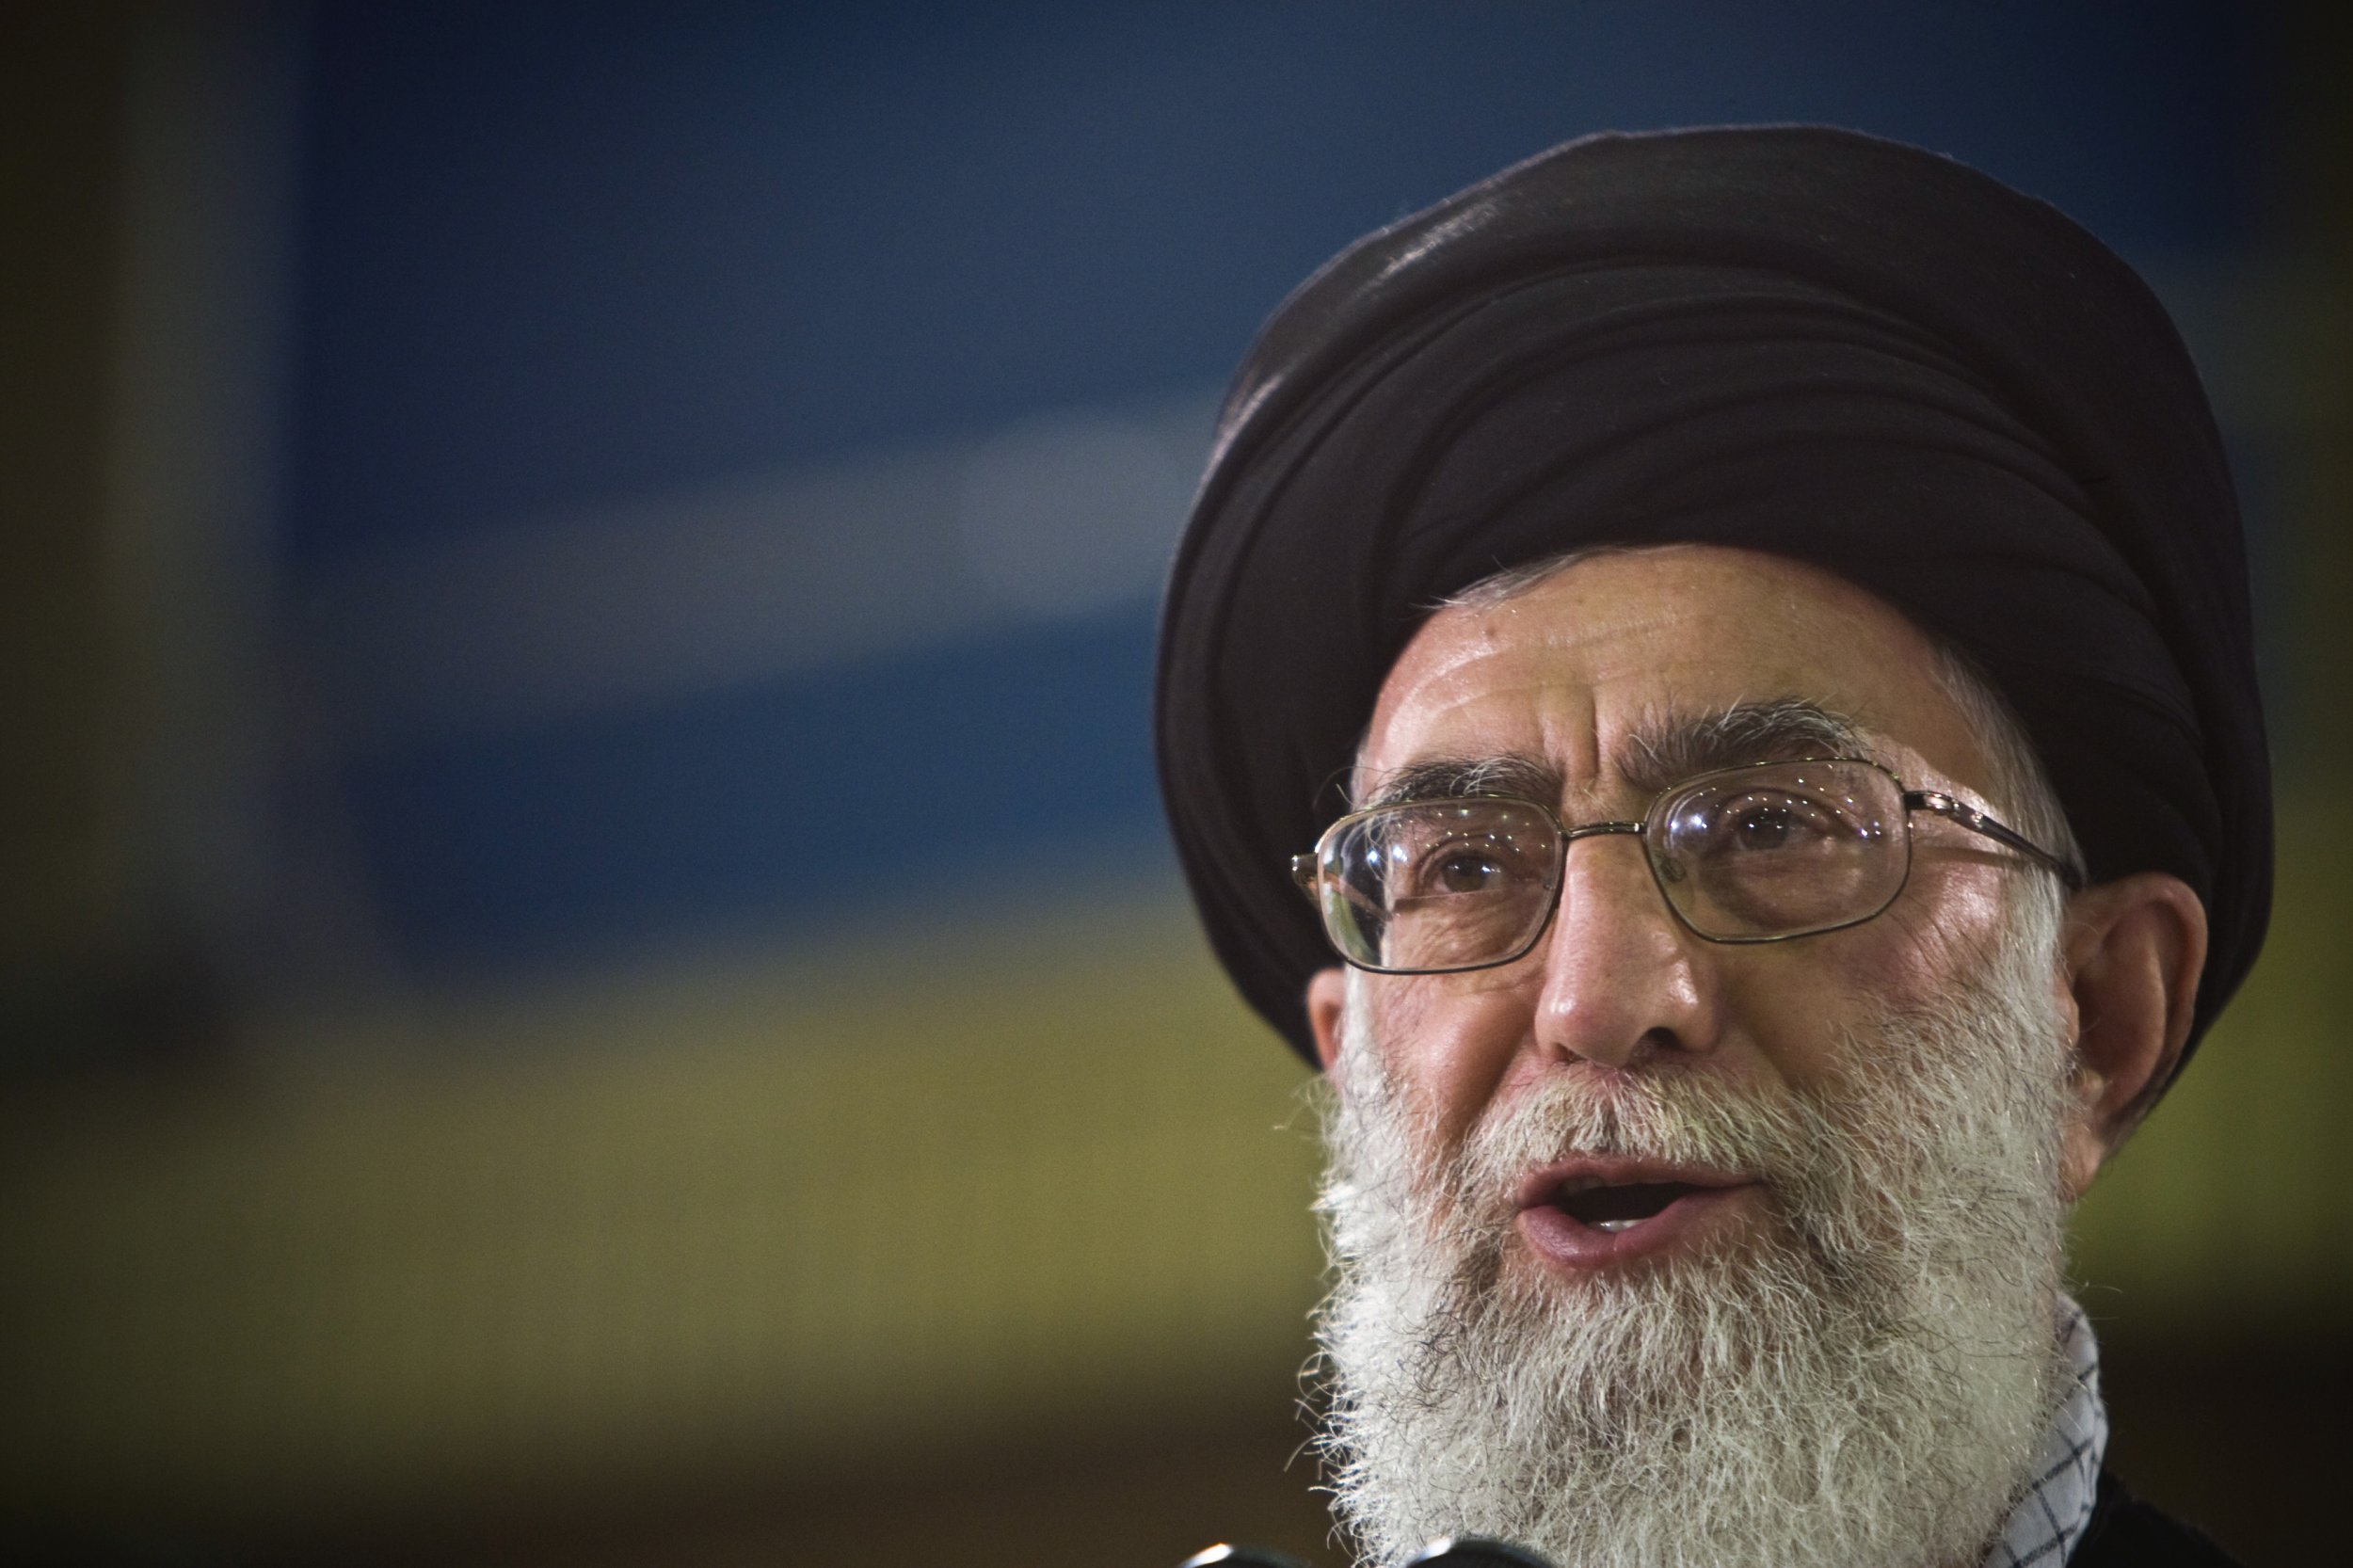 Iran's Supreme Leader Posts Holocaust Denial Video